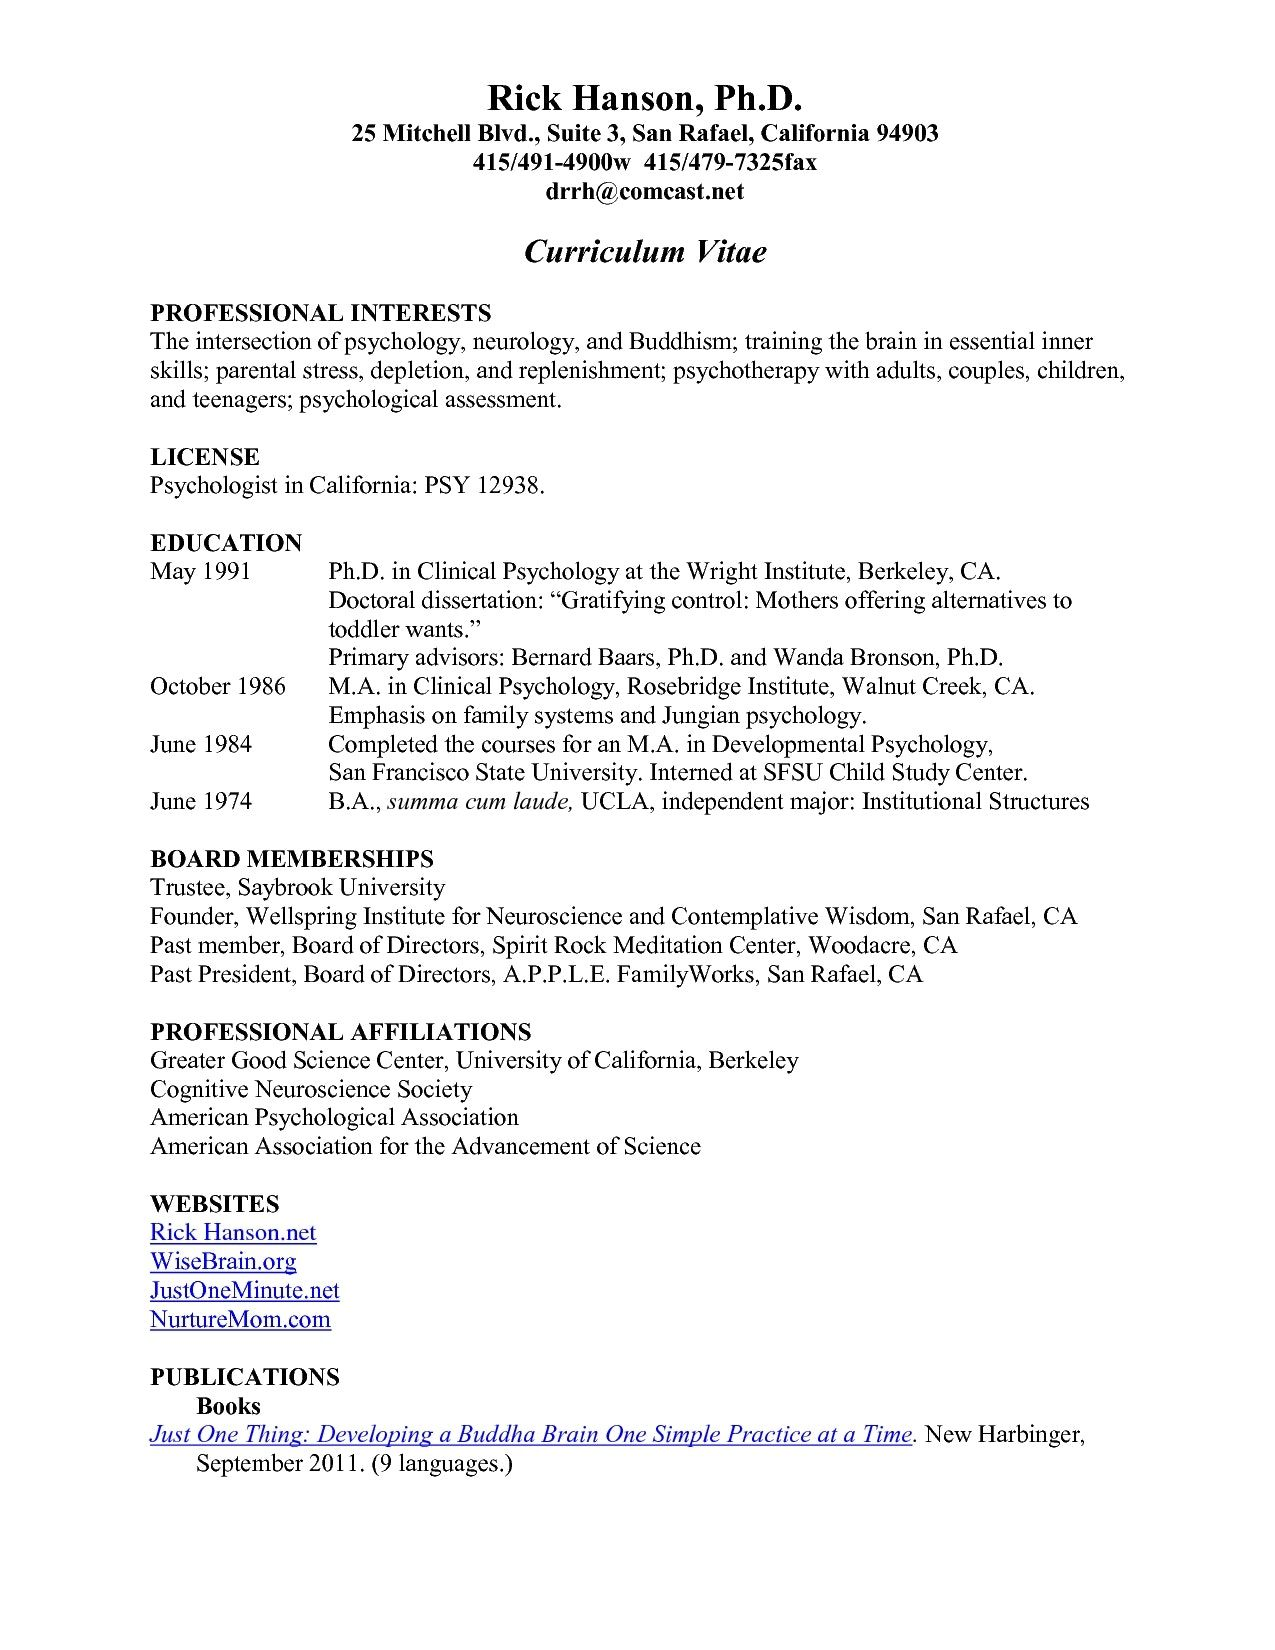 Resume Templates Reddit 2018